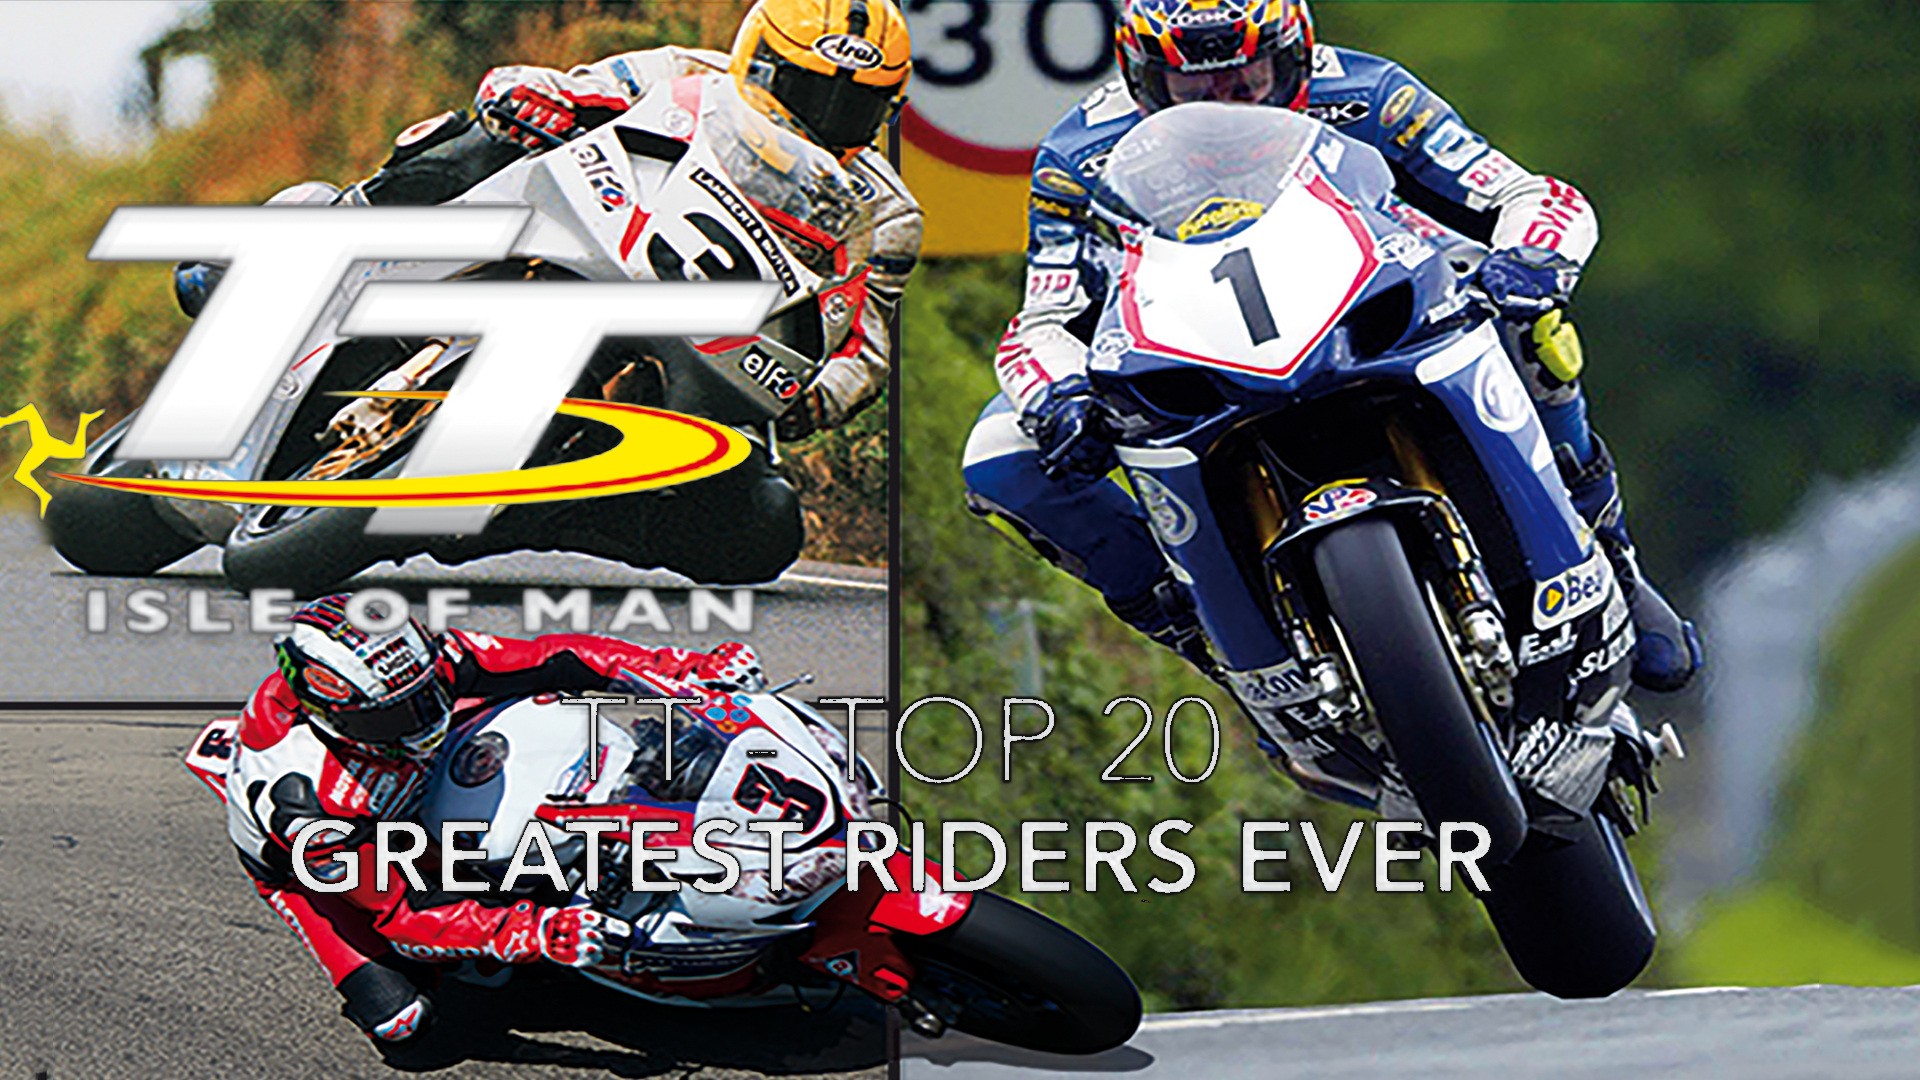 TT: Top 20 Greatest Riders Ever